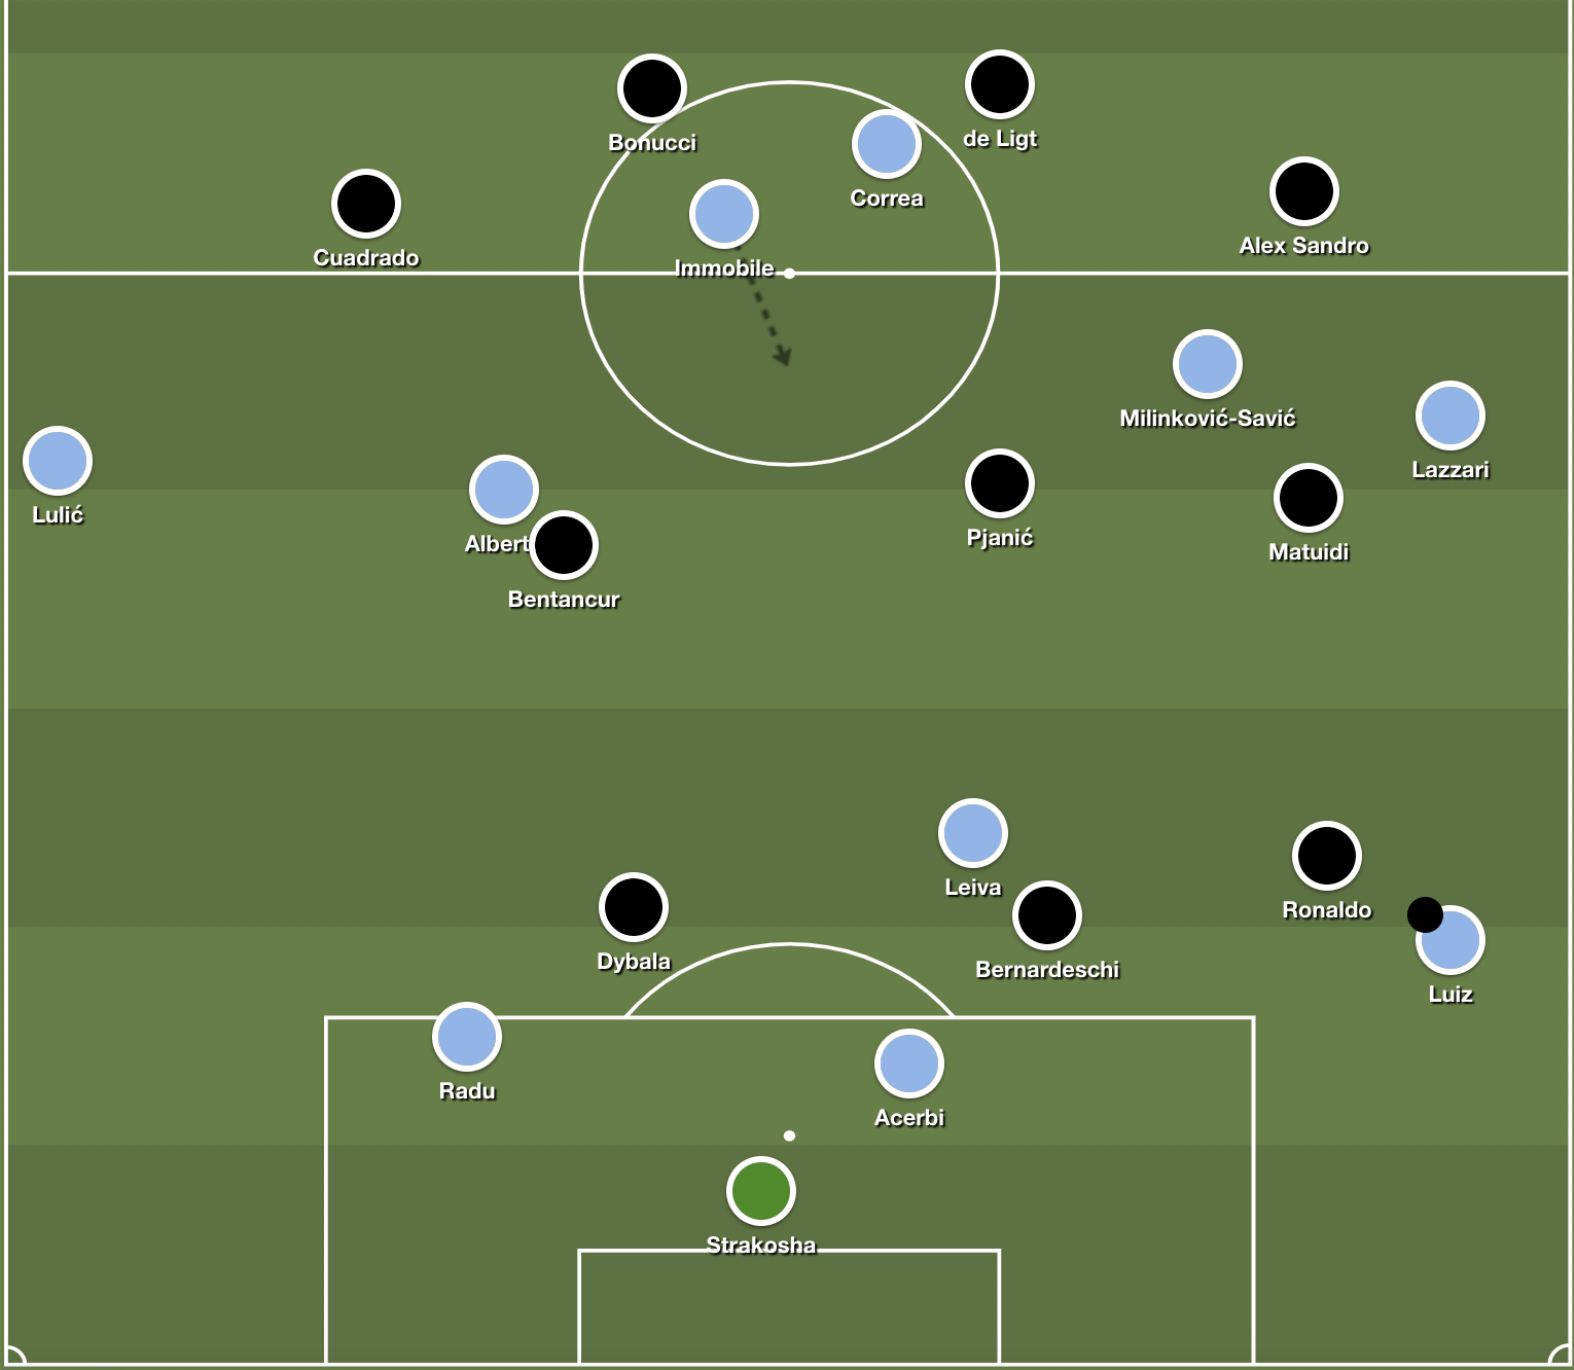 Lazio's overly-stretched buildup shape being contained by Juve's 4-3-3 press.